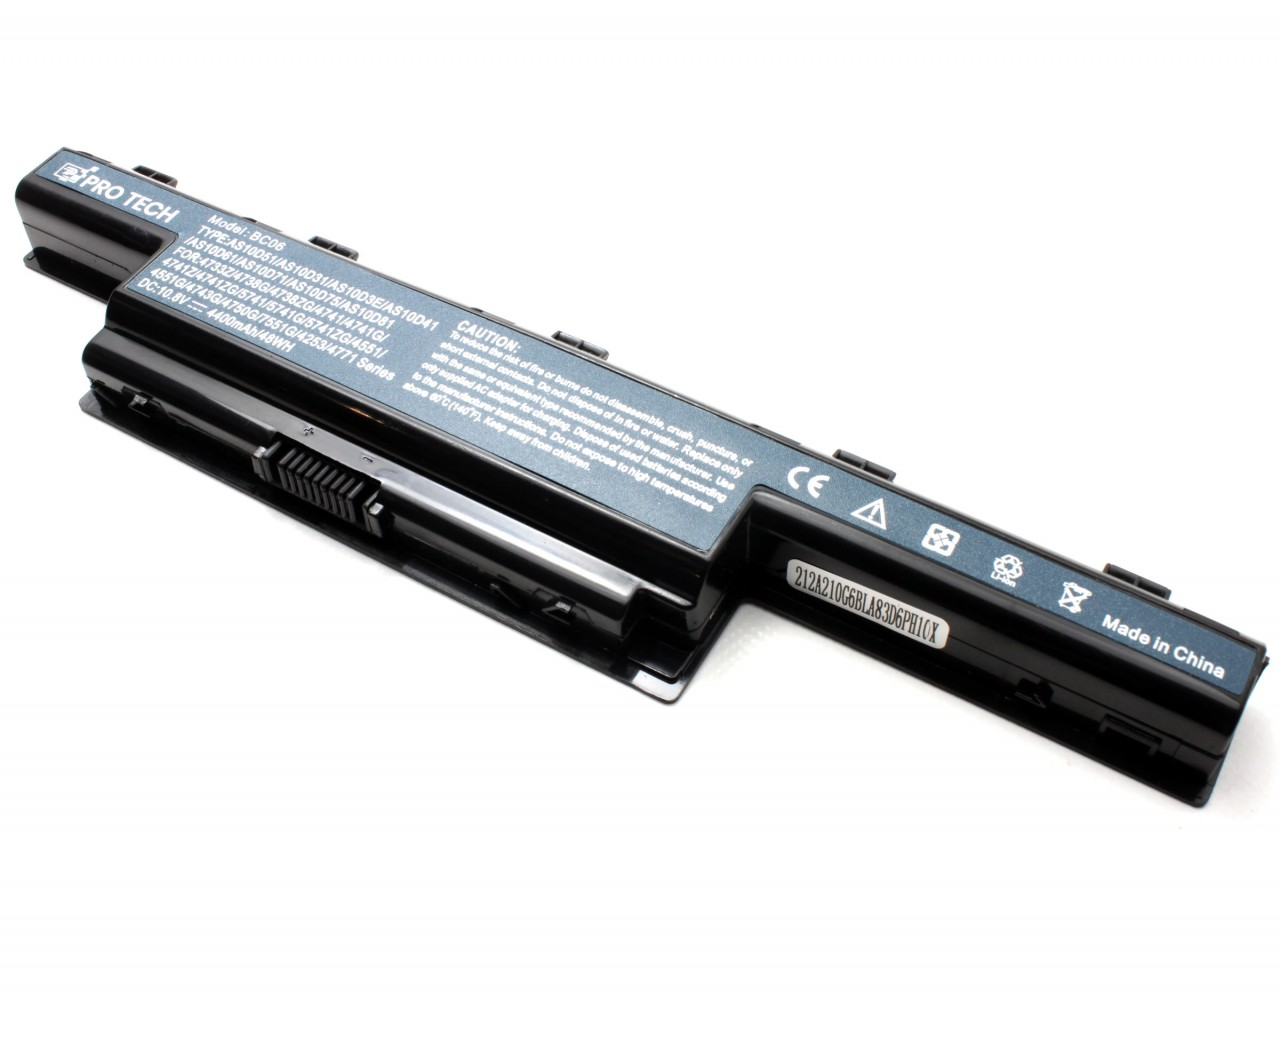 Baterie Packard Bell EasyNote TM86 9 celule imagine powerlaptop.ro 2021